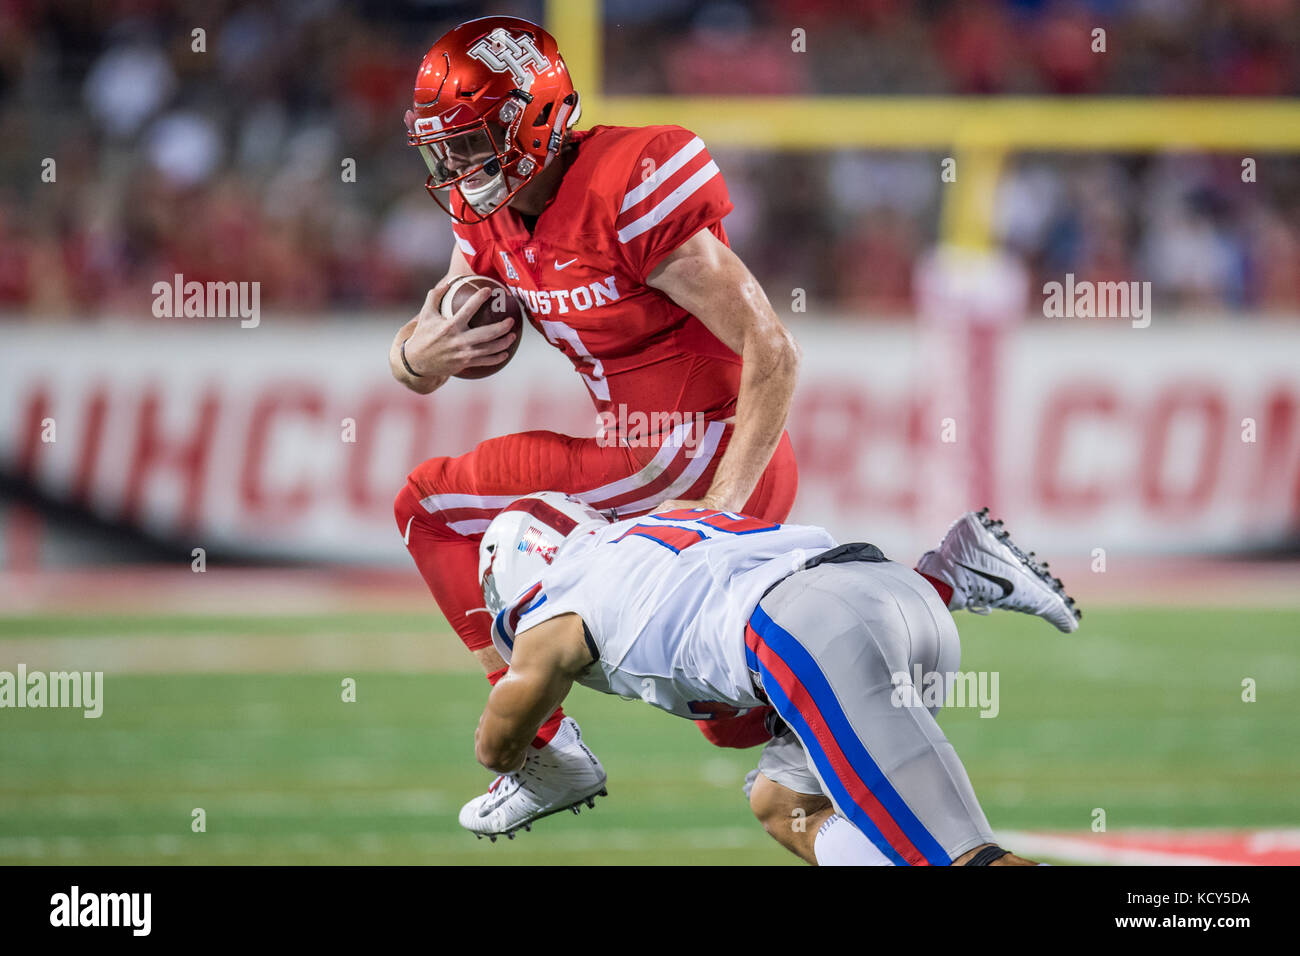 Houston, TX, USA  7th Oct, 2017  Houston Cougars quarterback